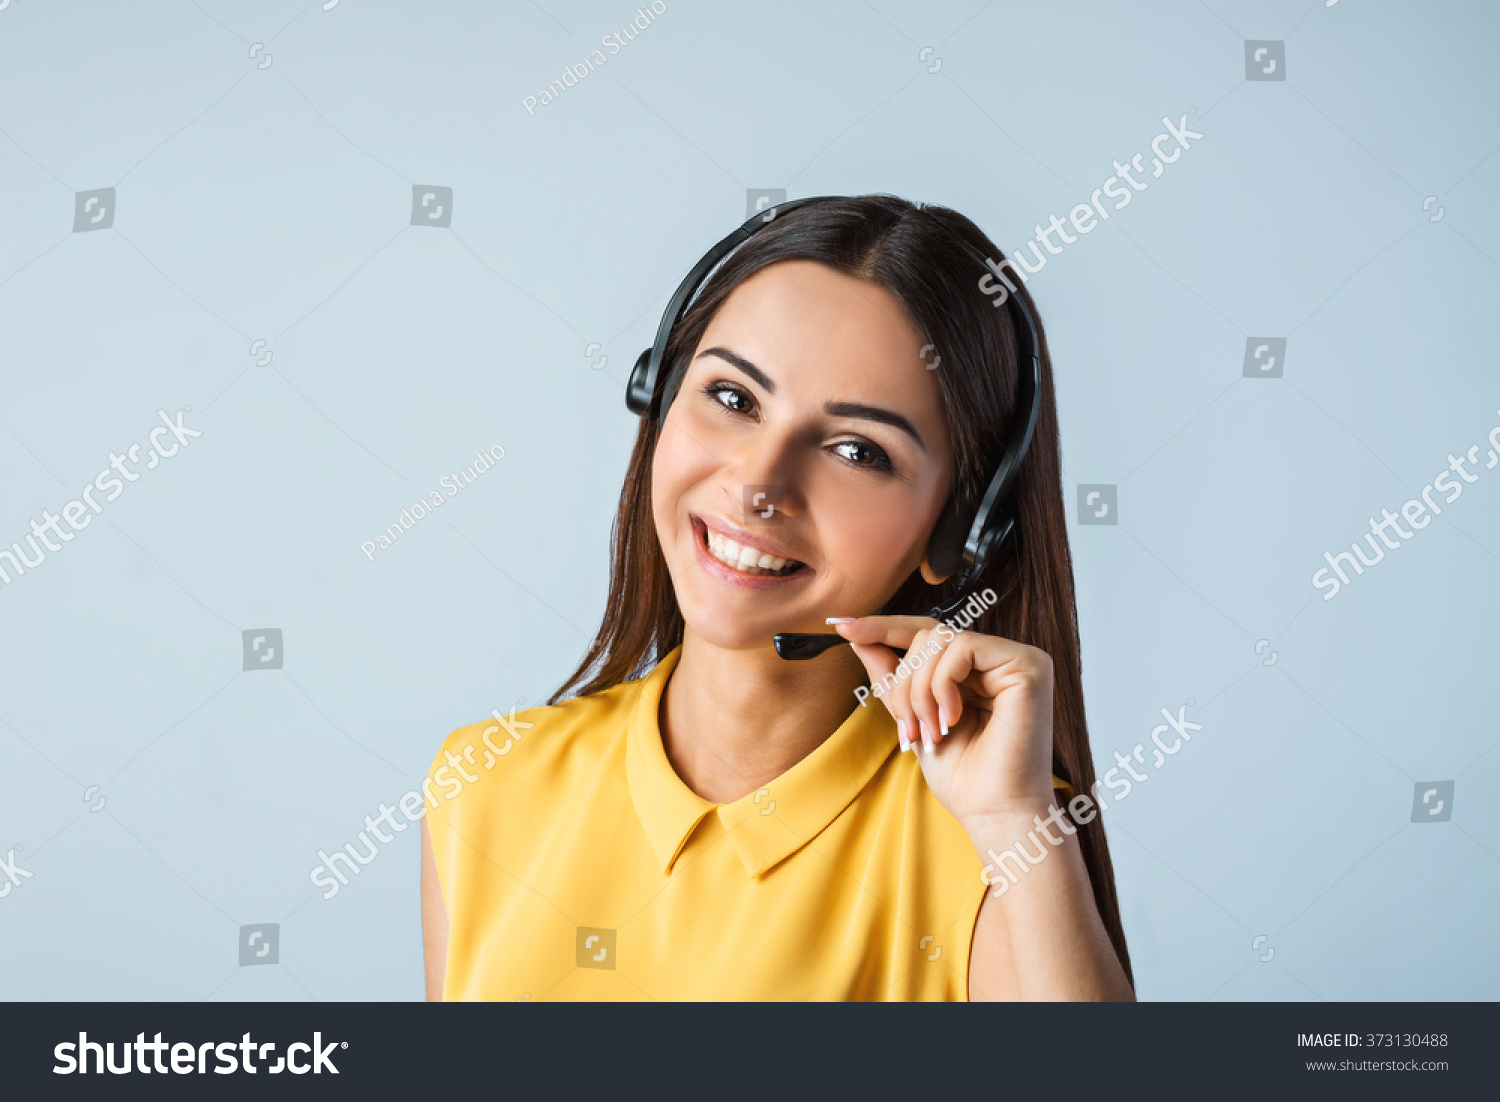 Photo of beautiful young call center operator standing near gray background. Woman with headphones looking at camera and smiling #373130488